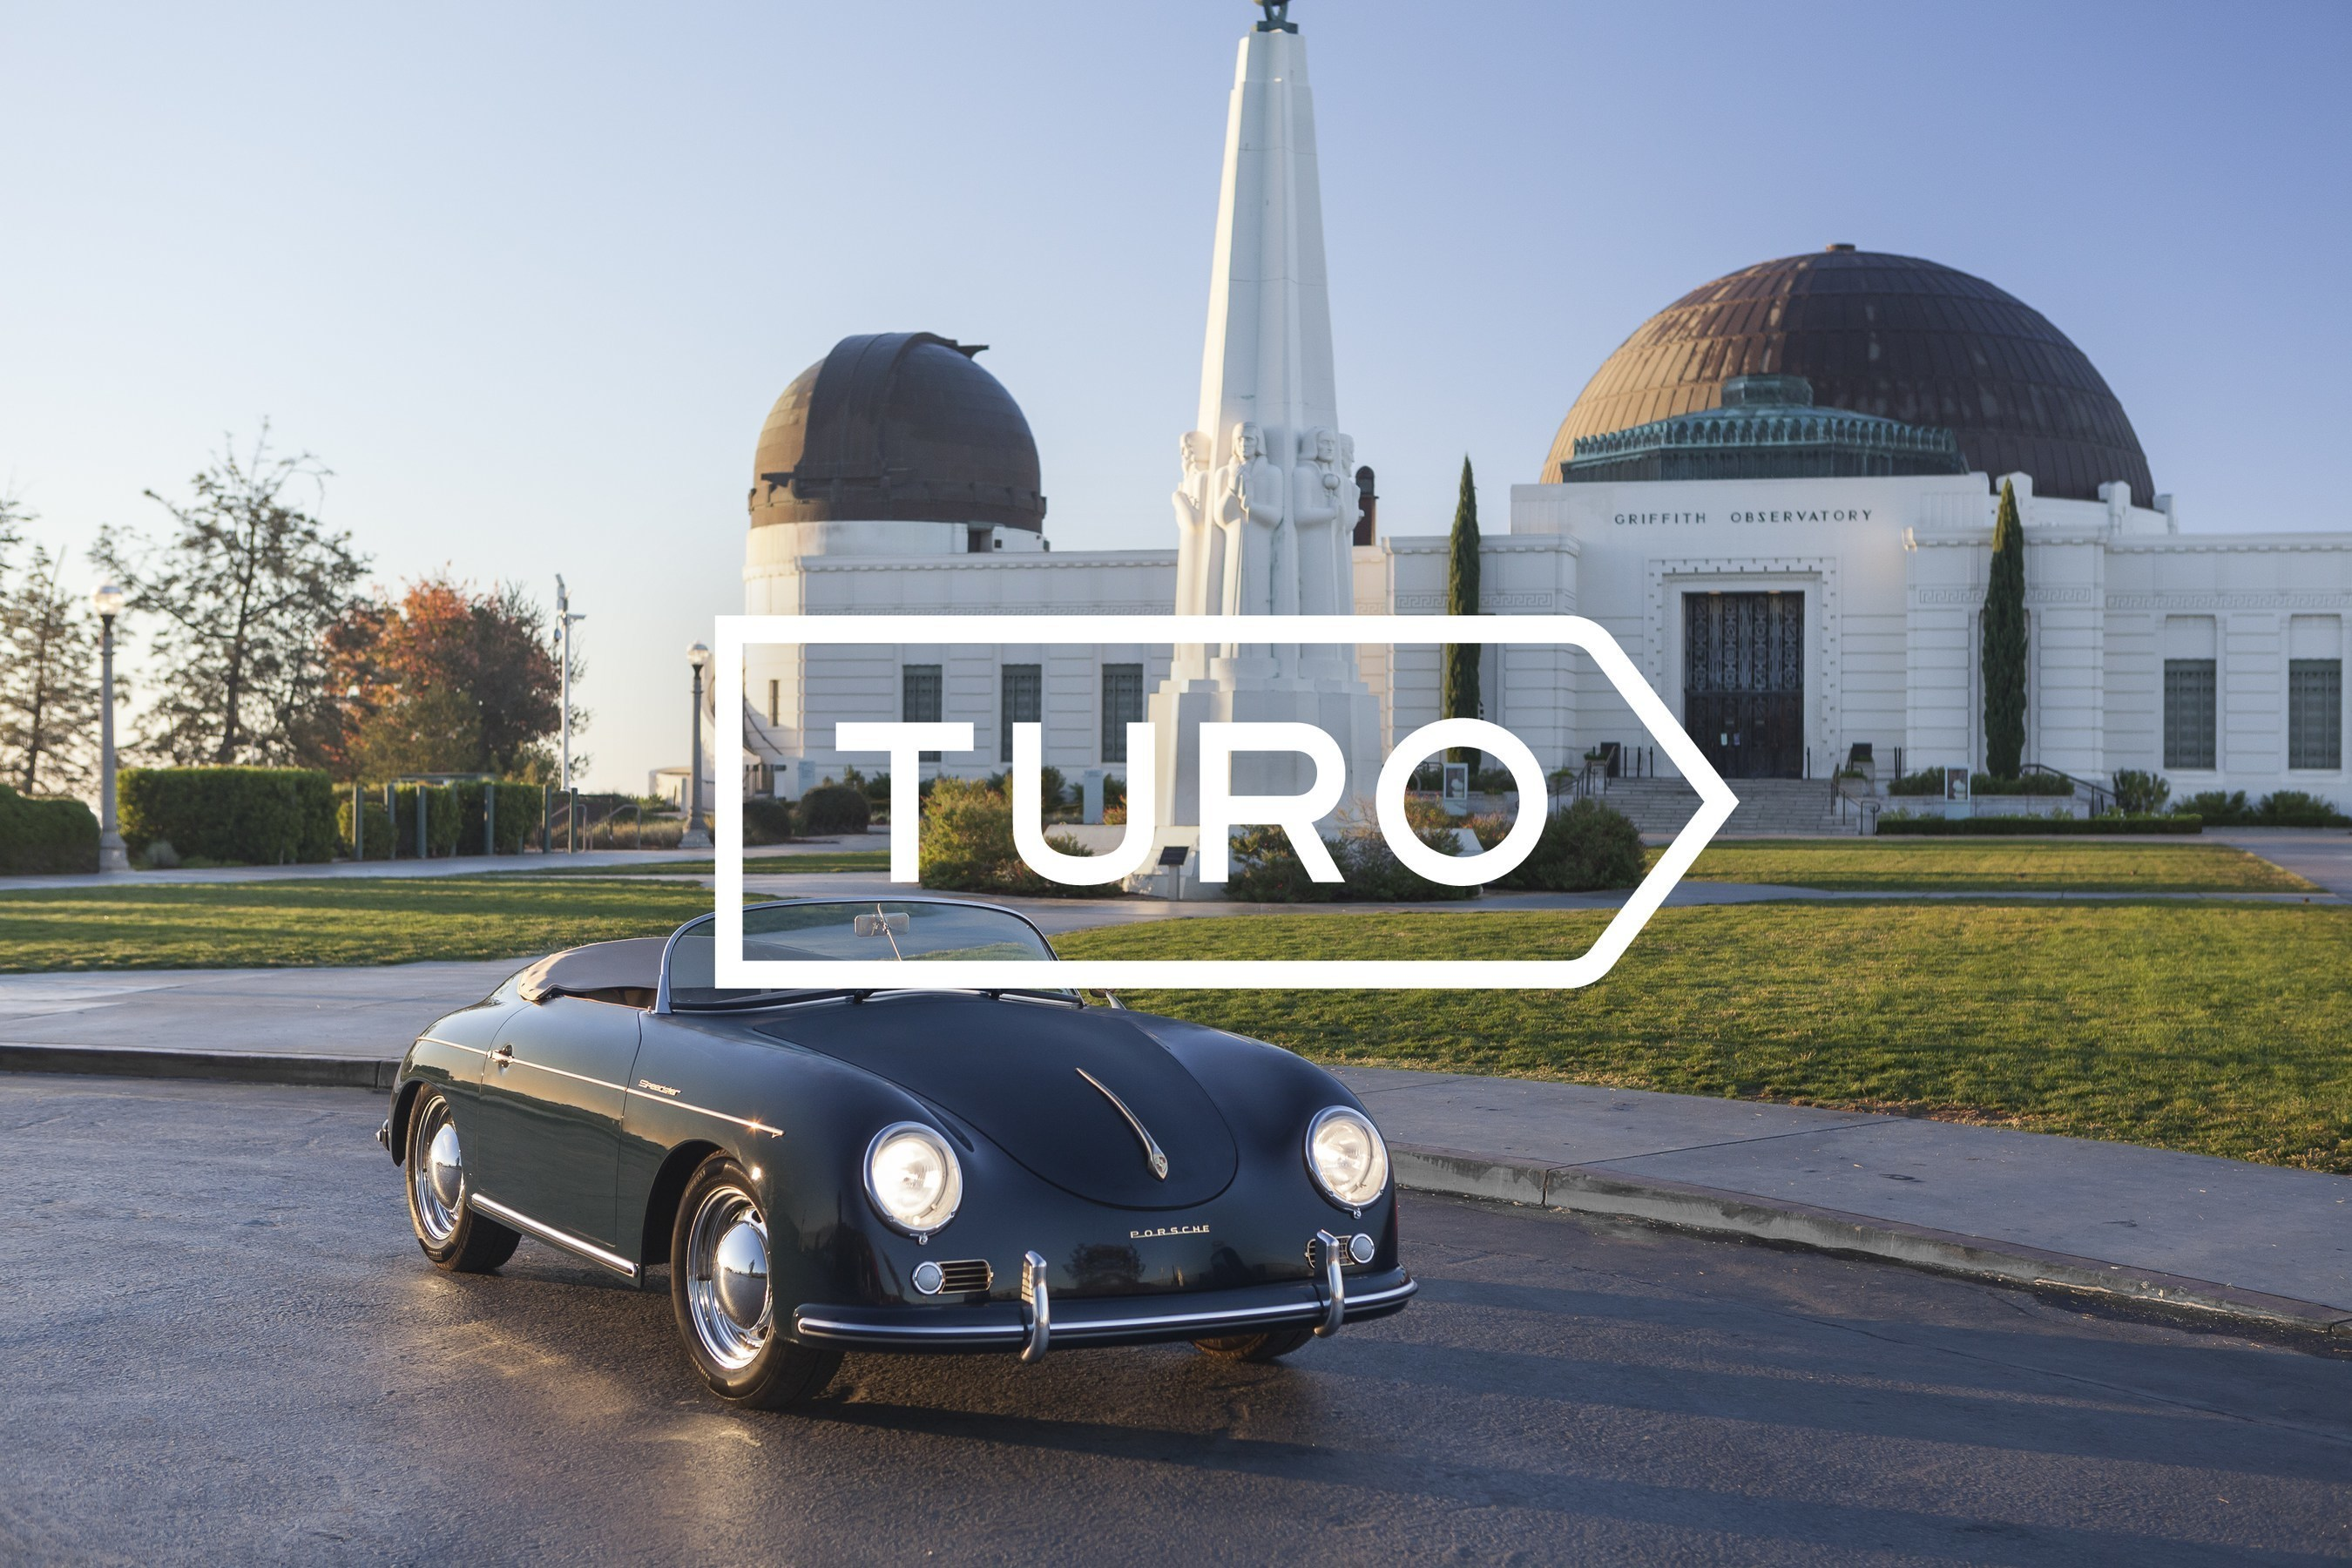 Turo creates authentic, shared travel experiences by connecting local car owners with travelers in need of a car.